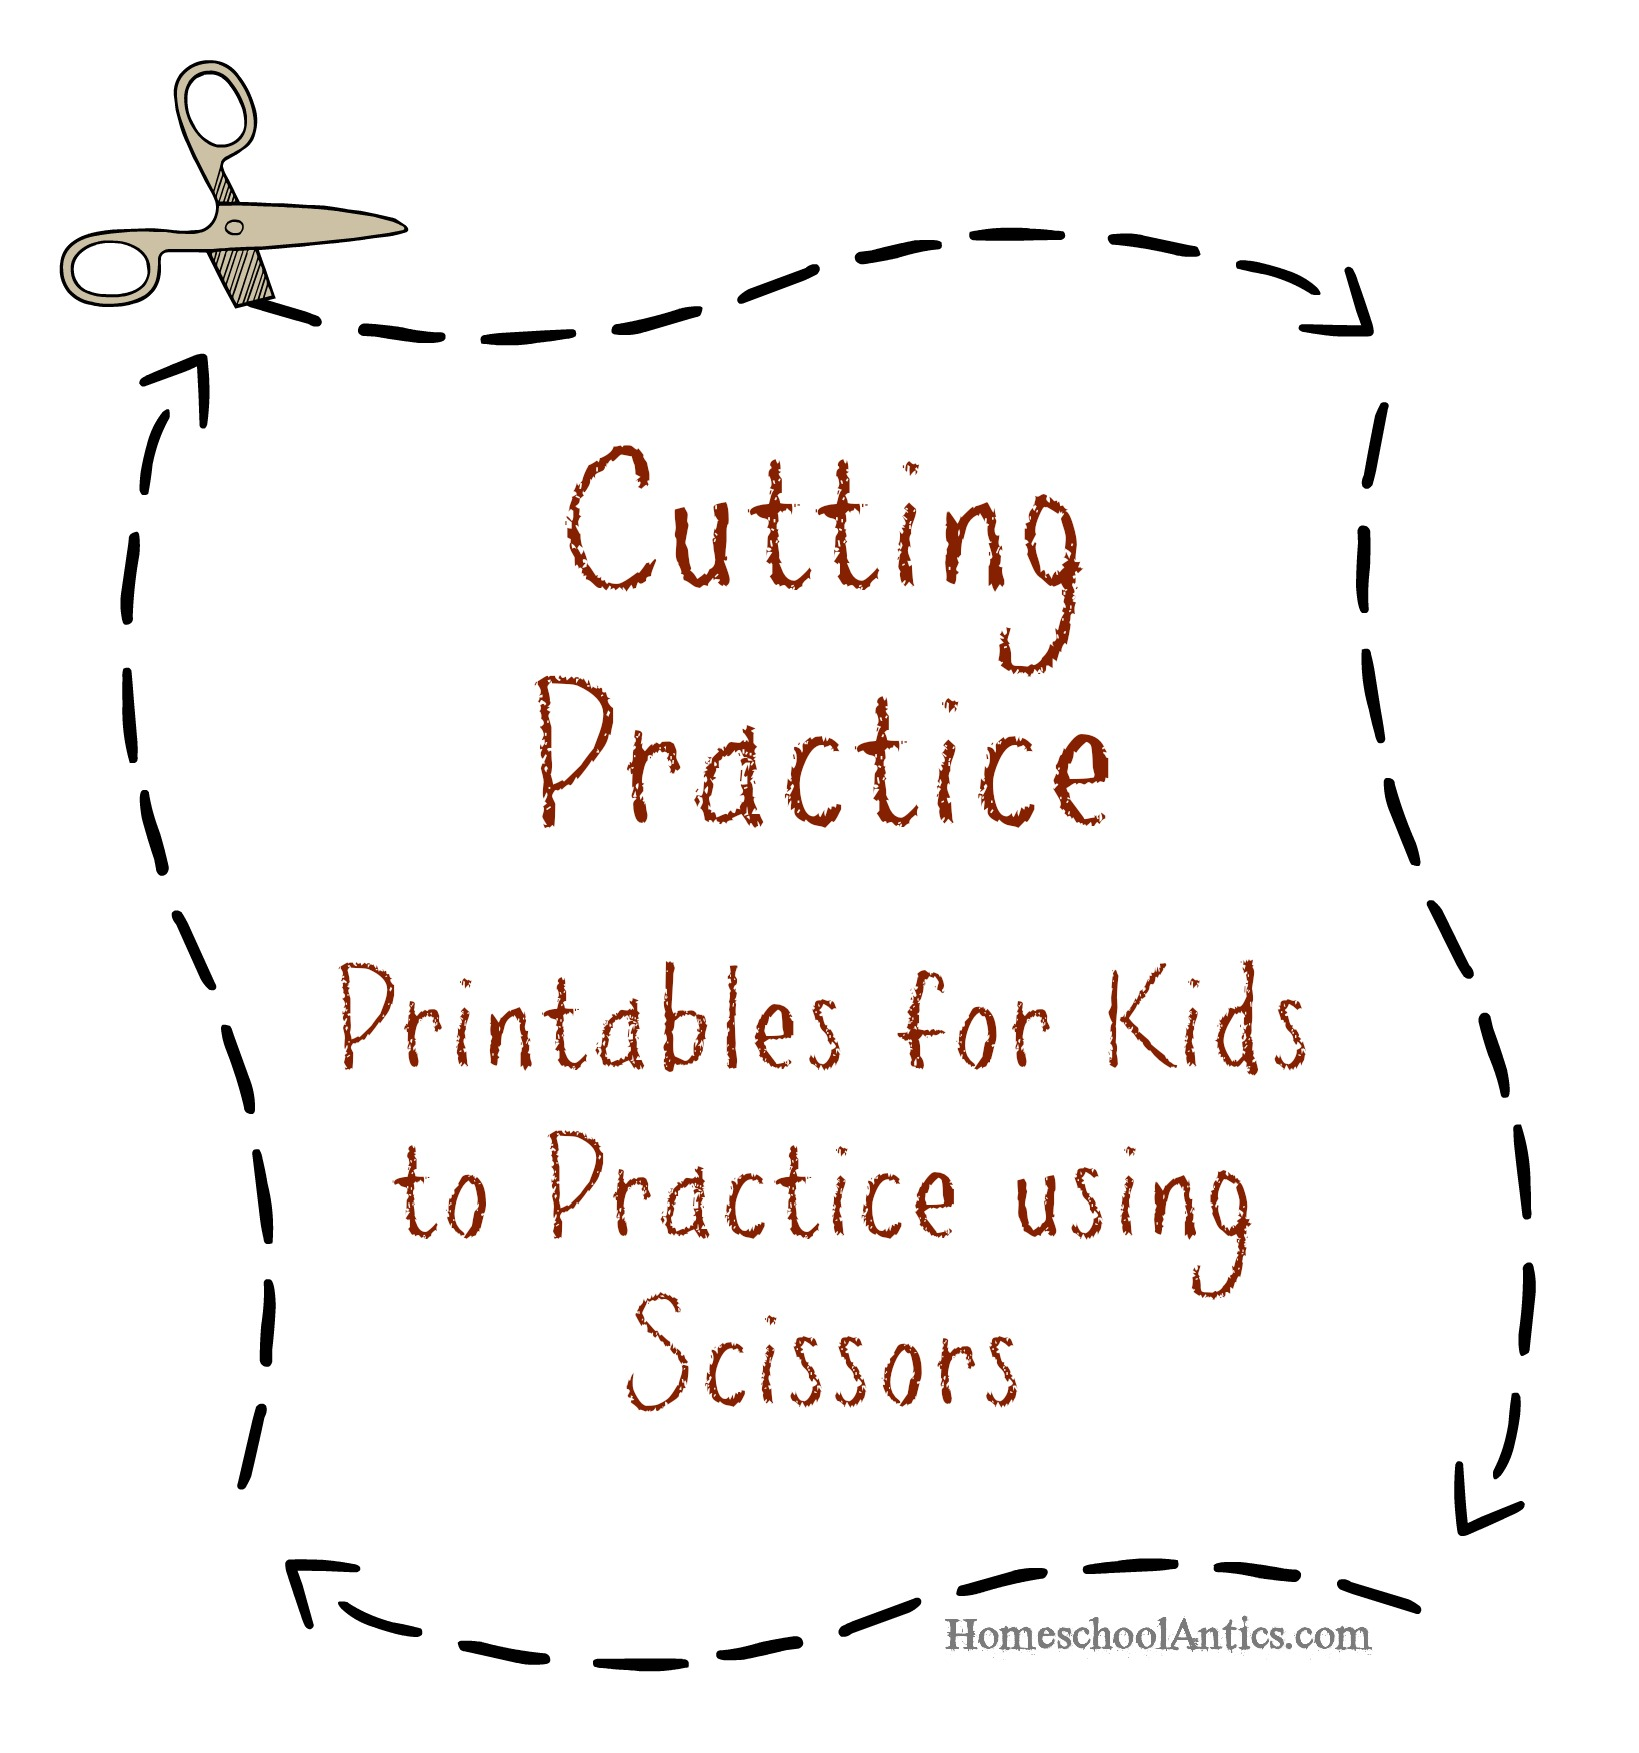 worksheet Preschool Cutting Worksheets practice printables cutting printables